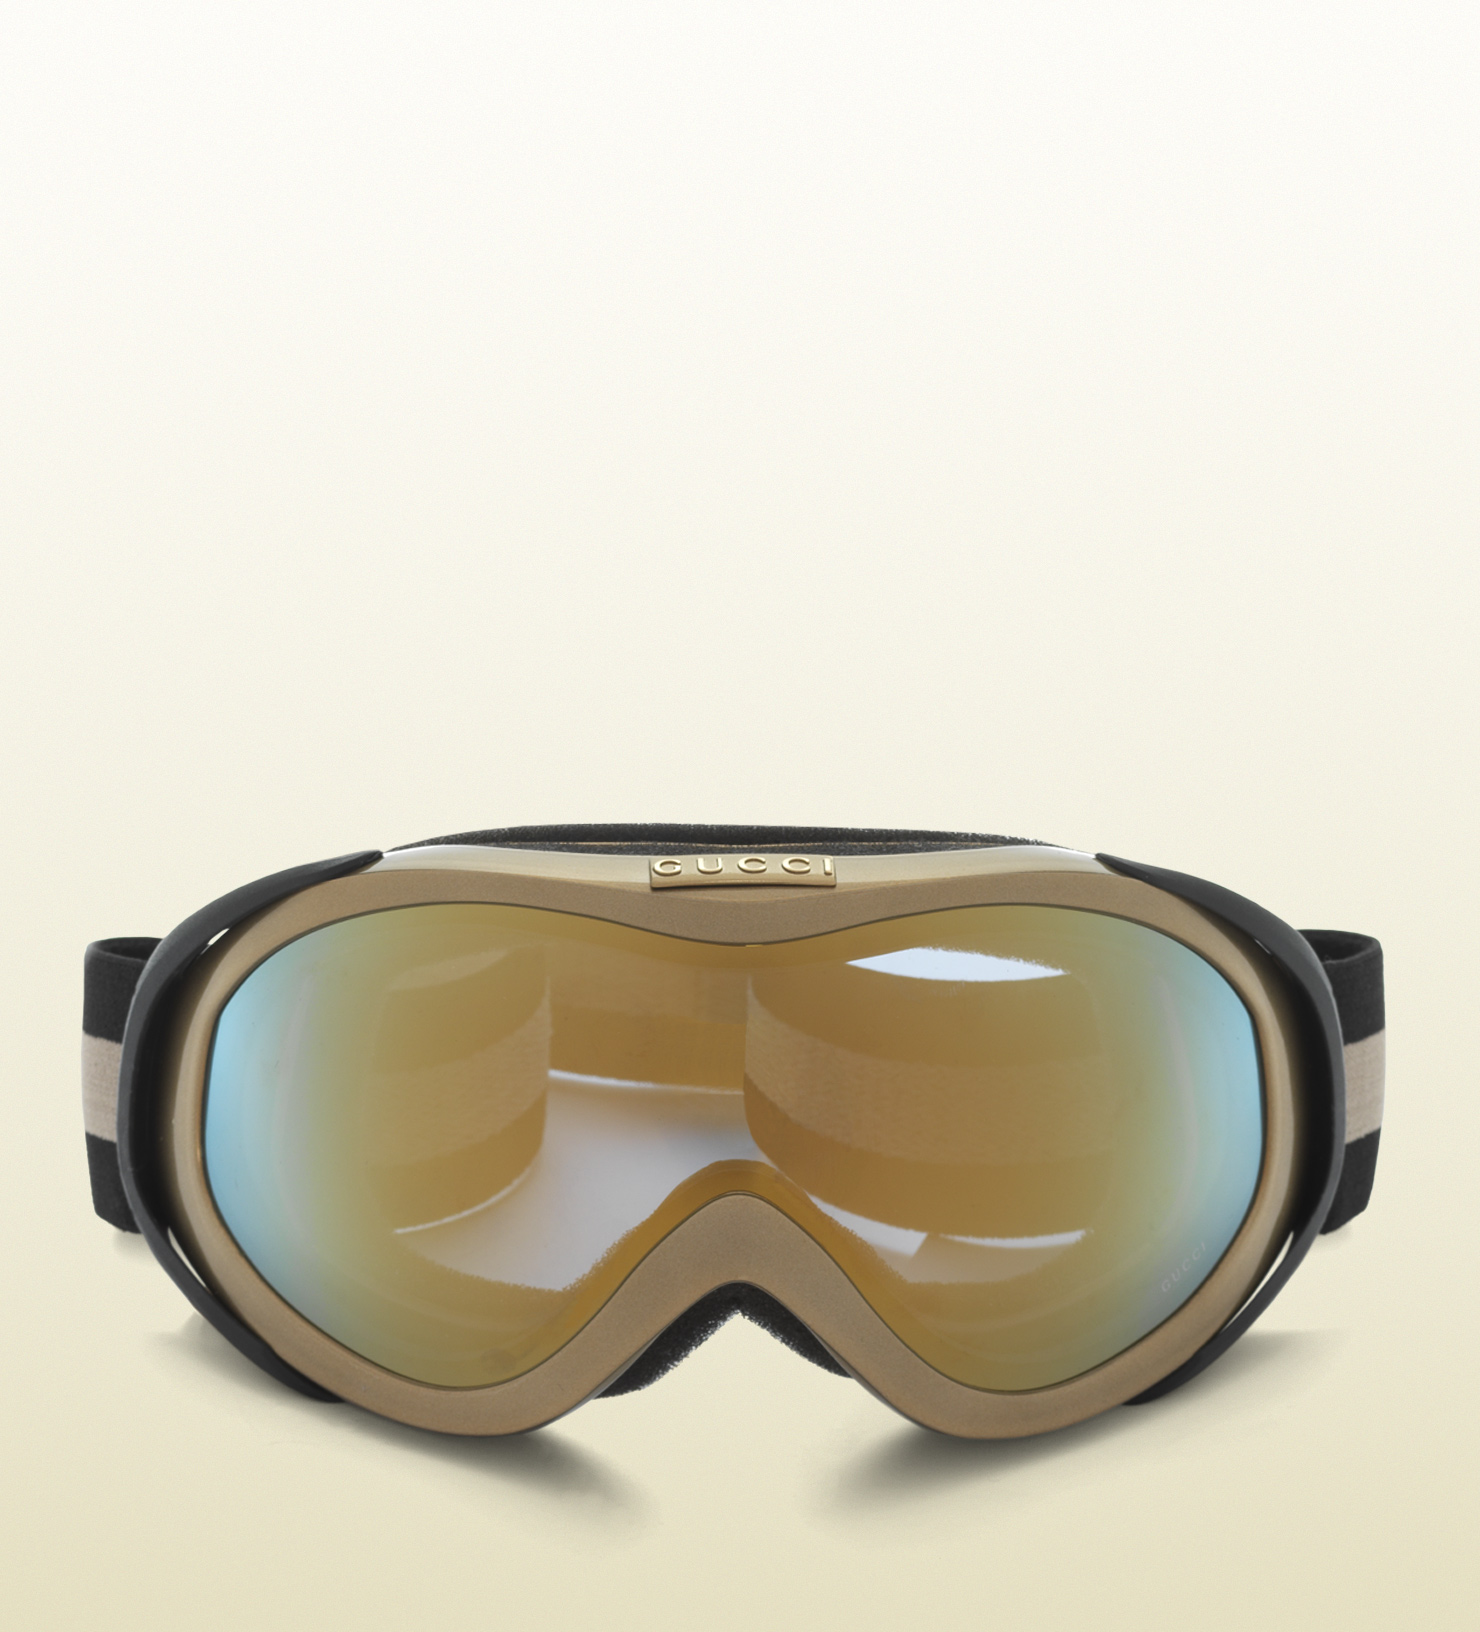 6123425134b Gucci Ski Goggles With Logo And Signature Web Detail in Metallic for Men -  Lyst